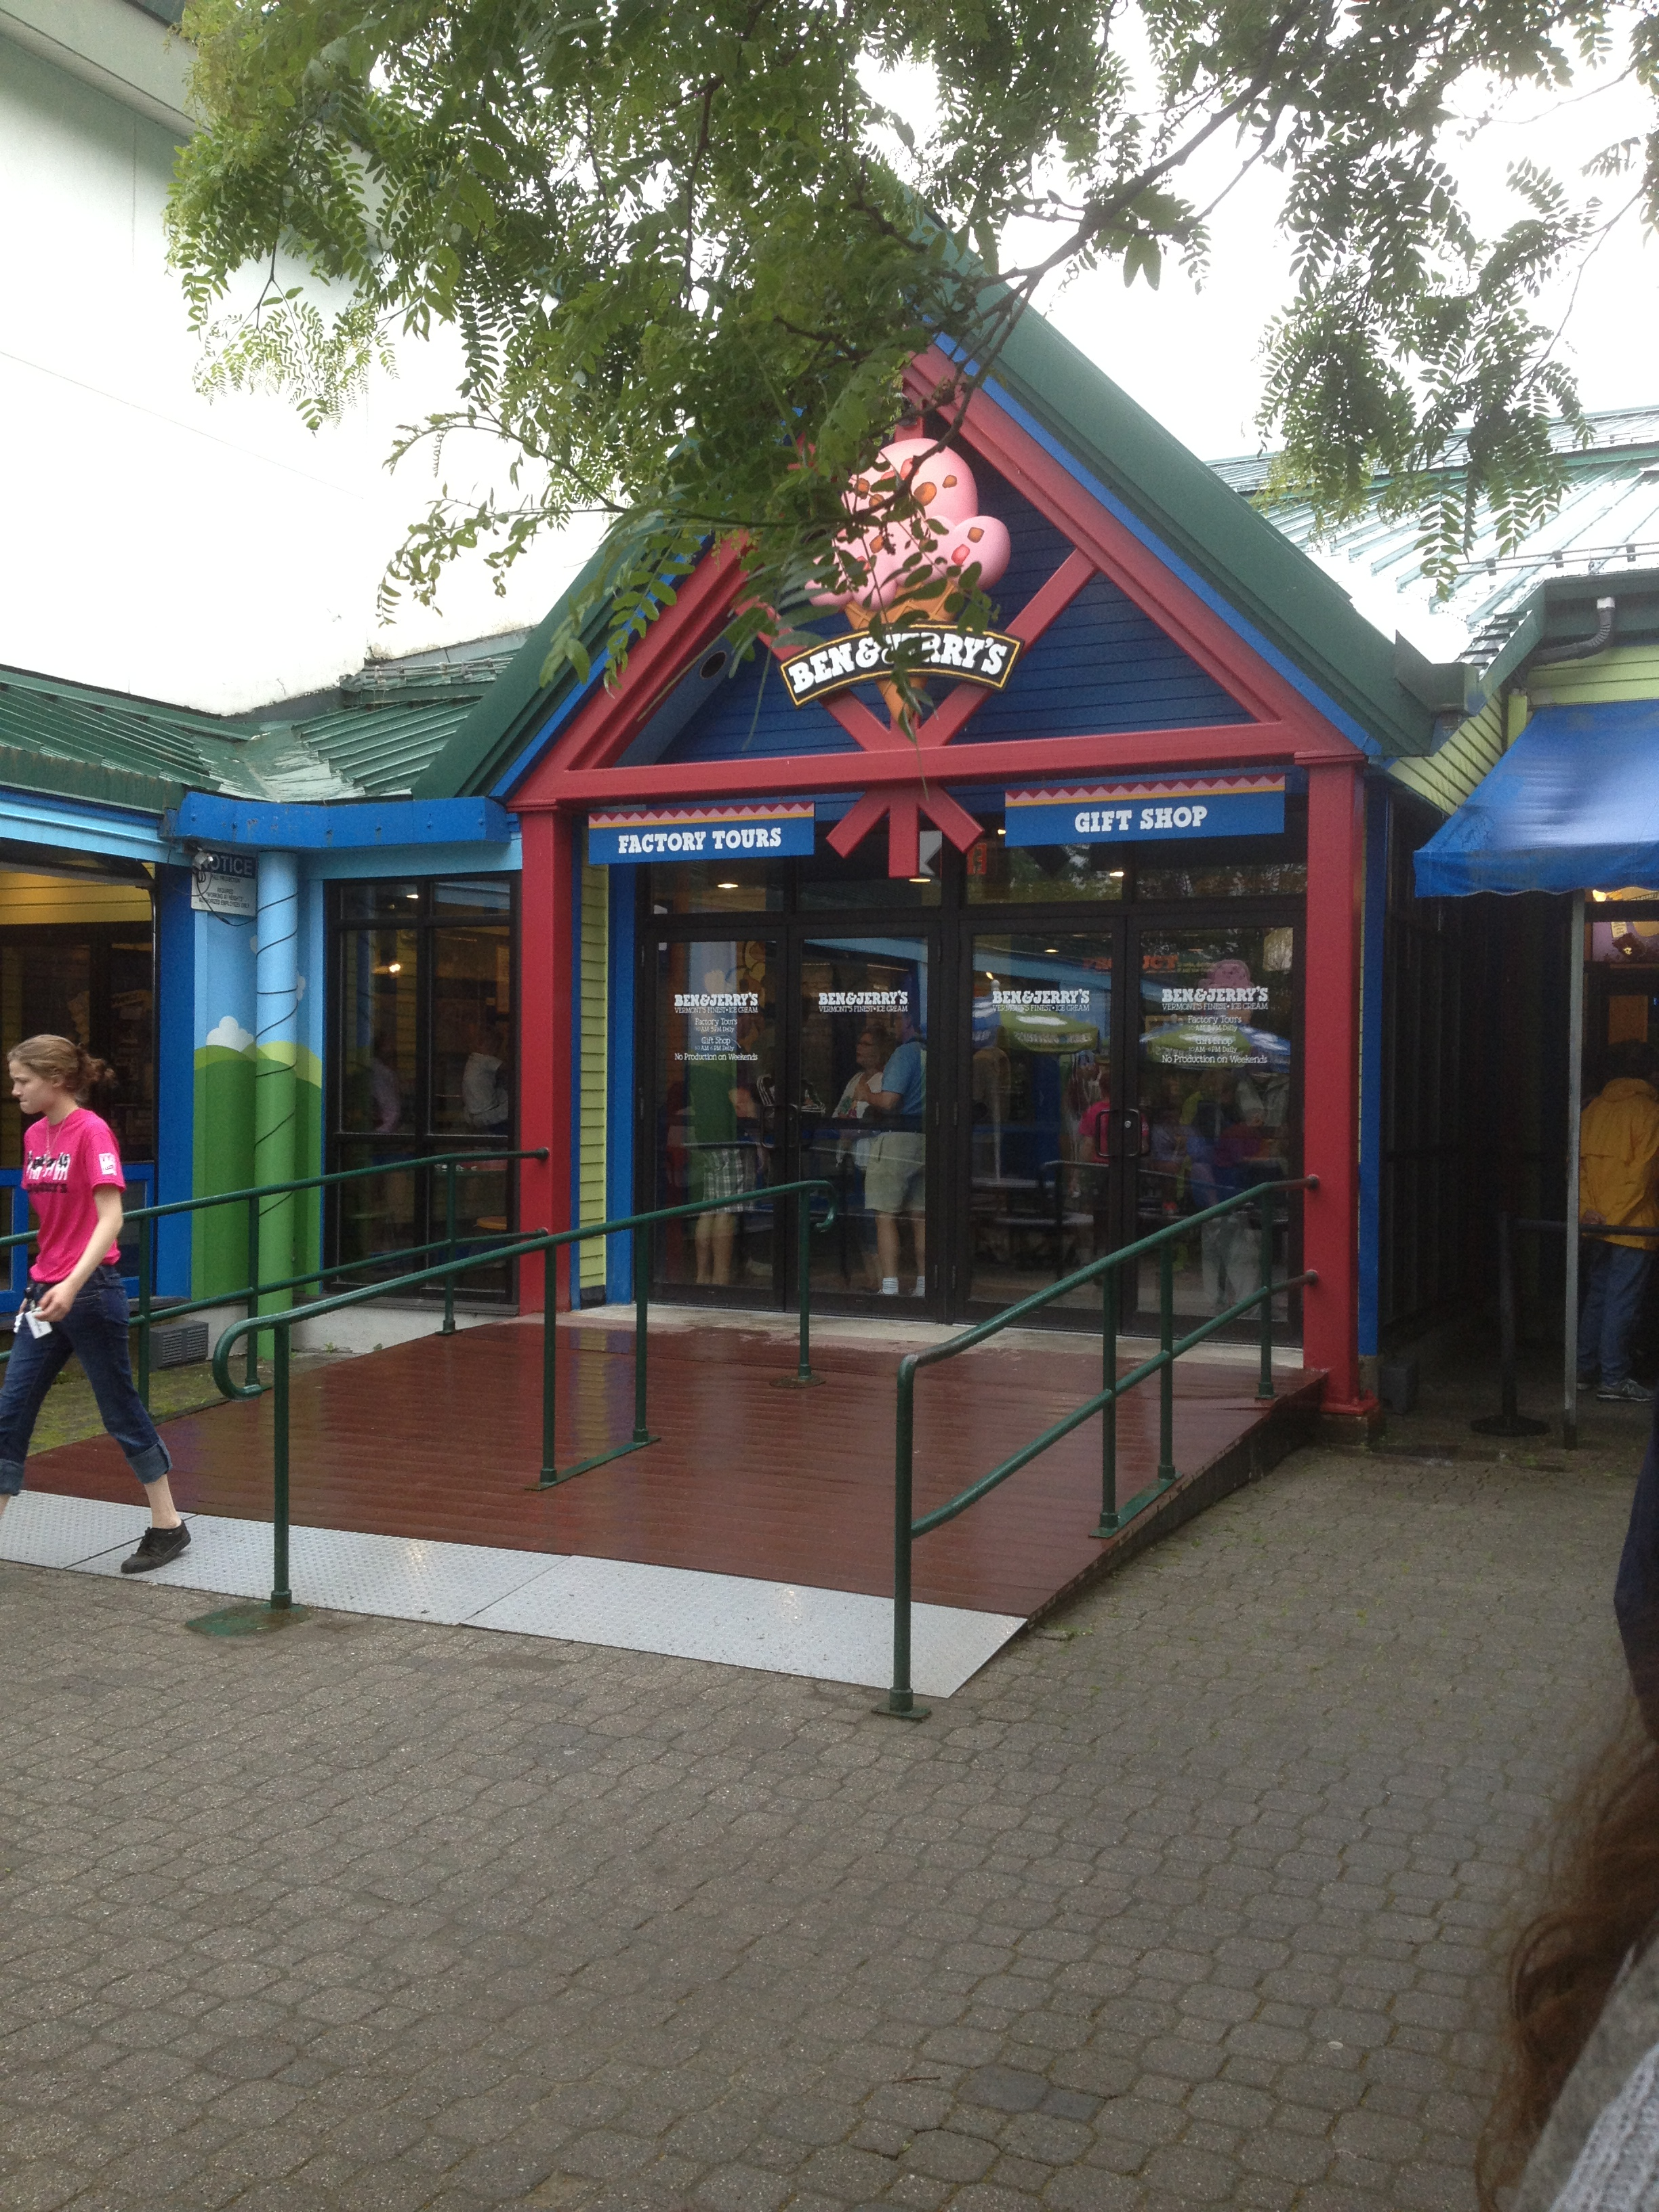 Ben & Jerry's Tour and Gift Shop entrance.